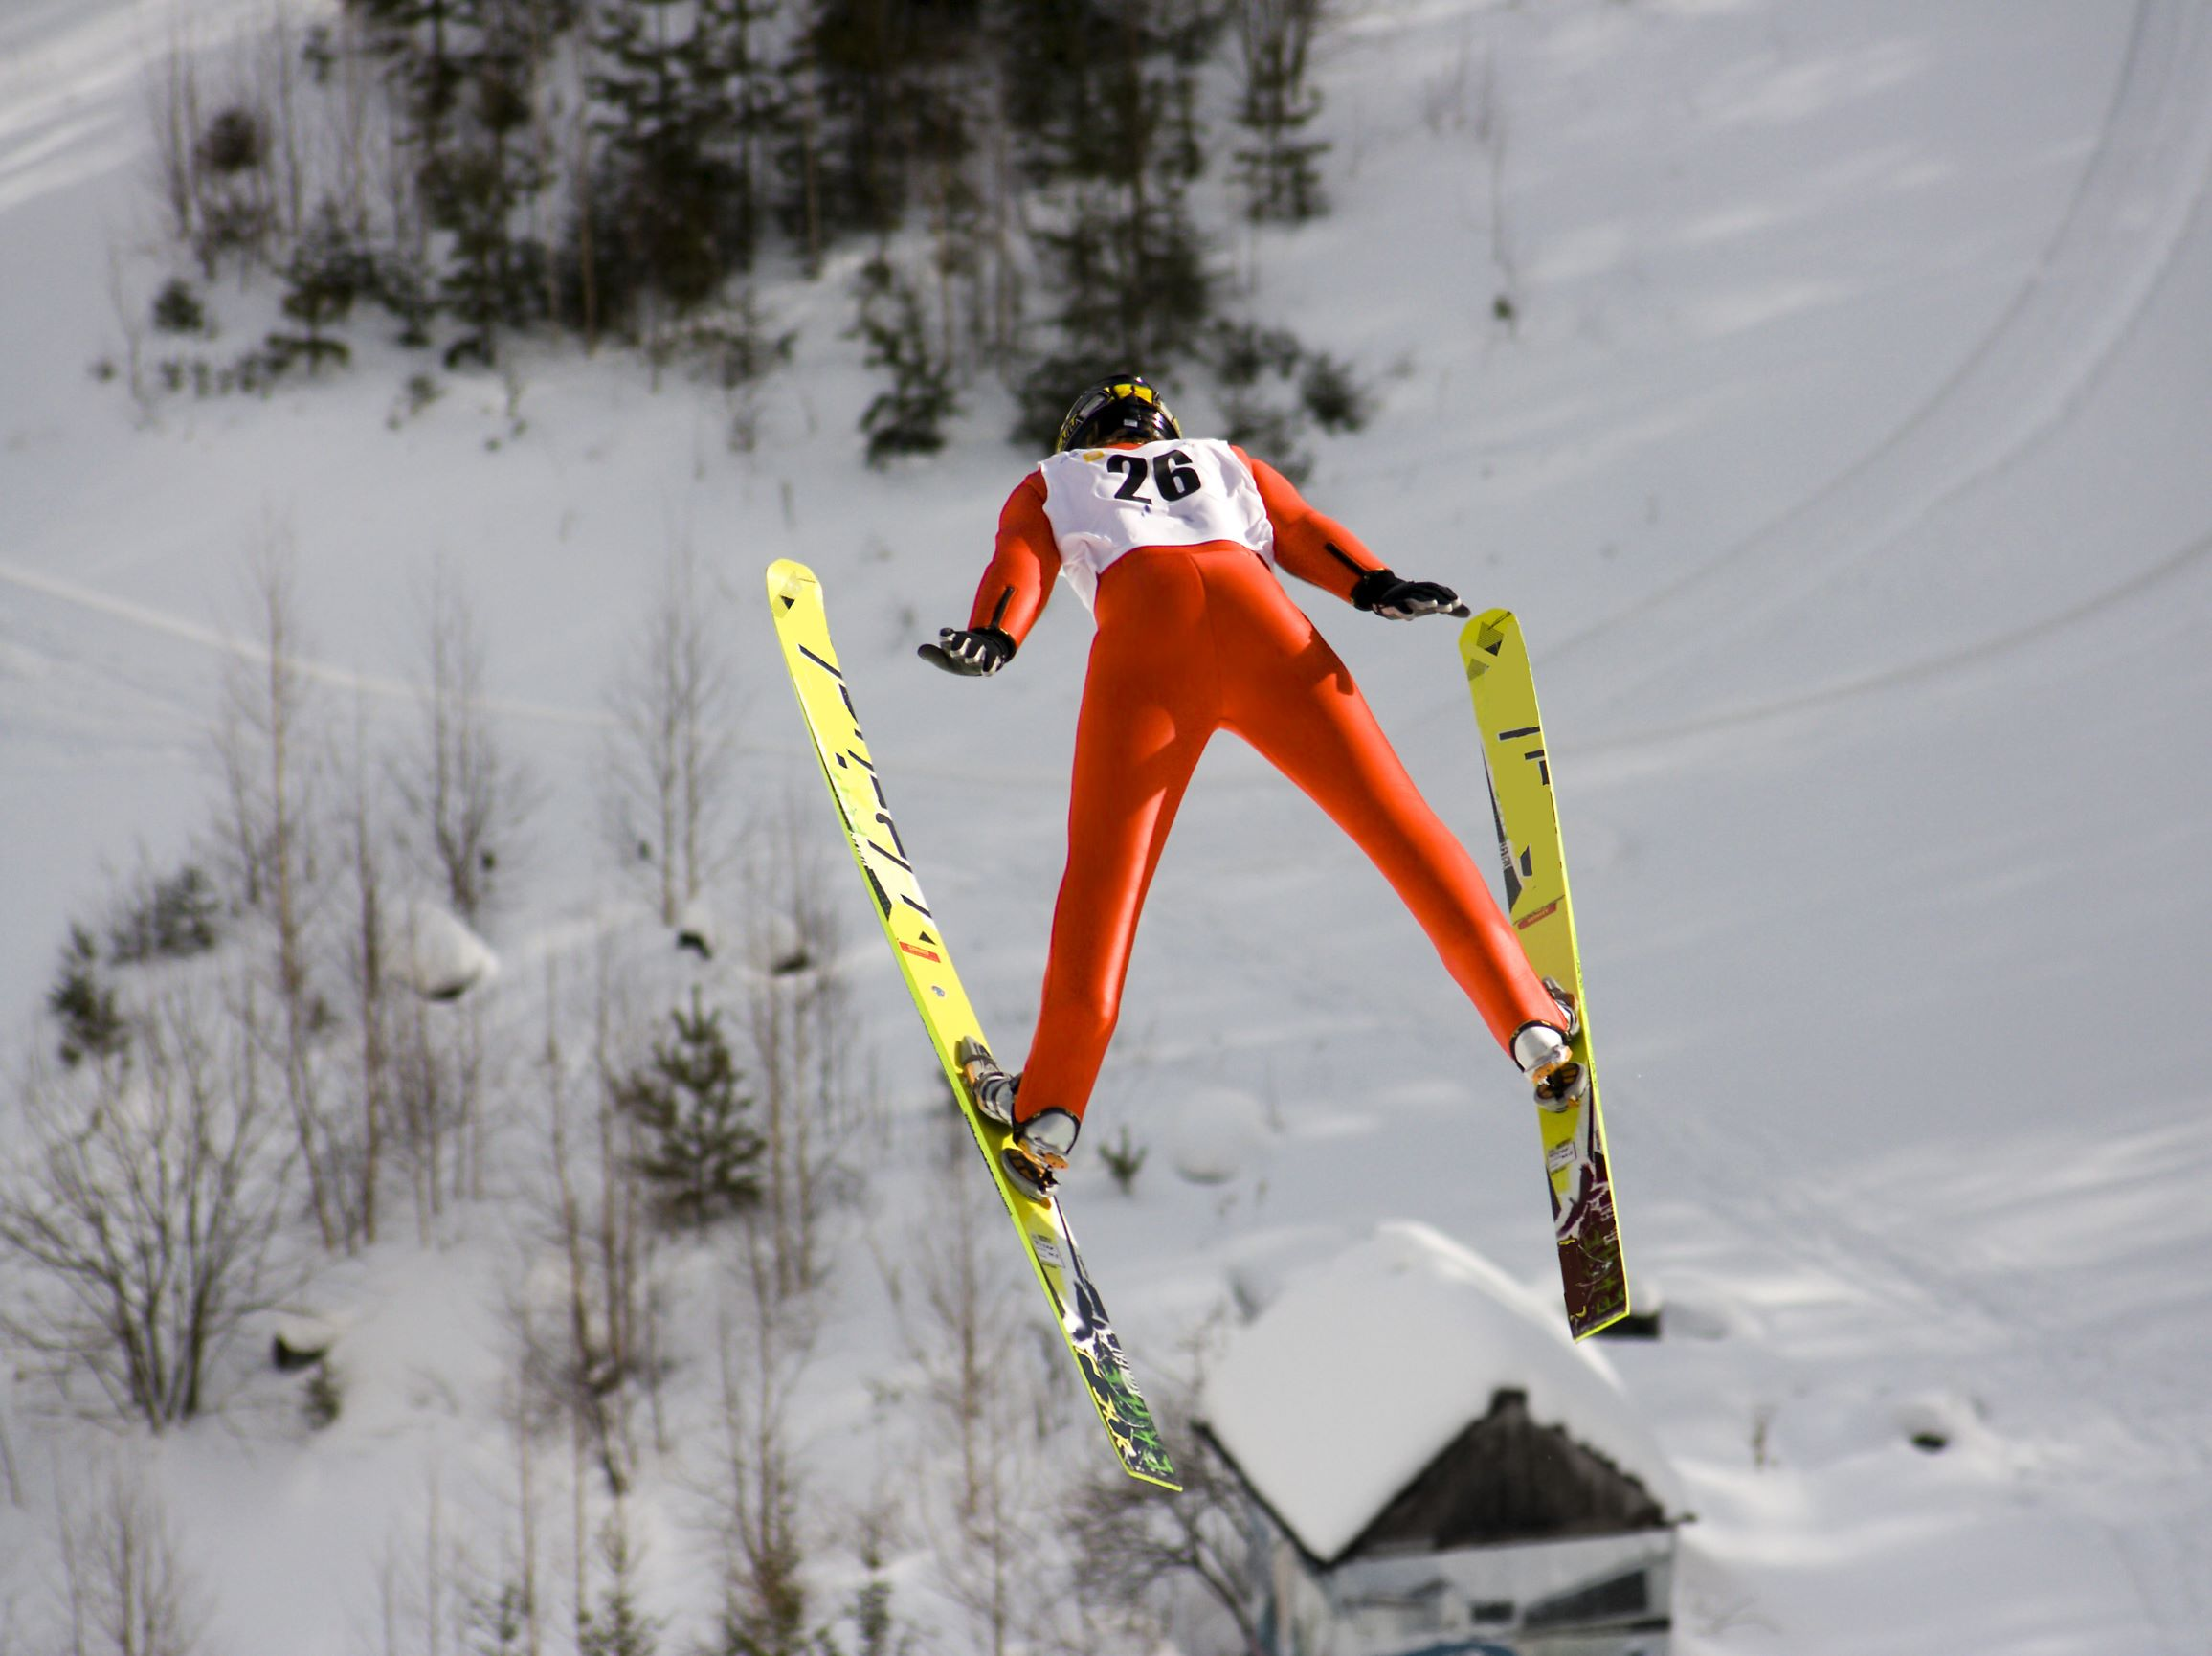 Competitive ski jumper flying through the air after leaving the ramp